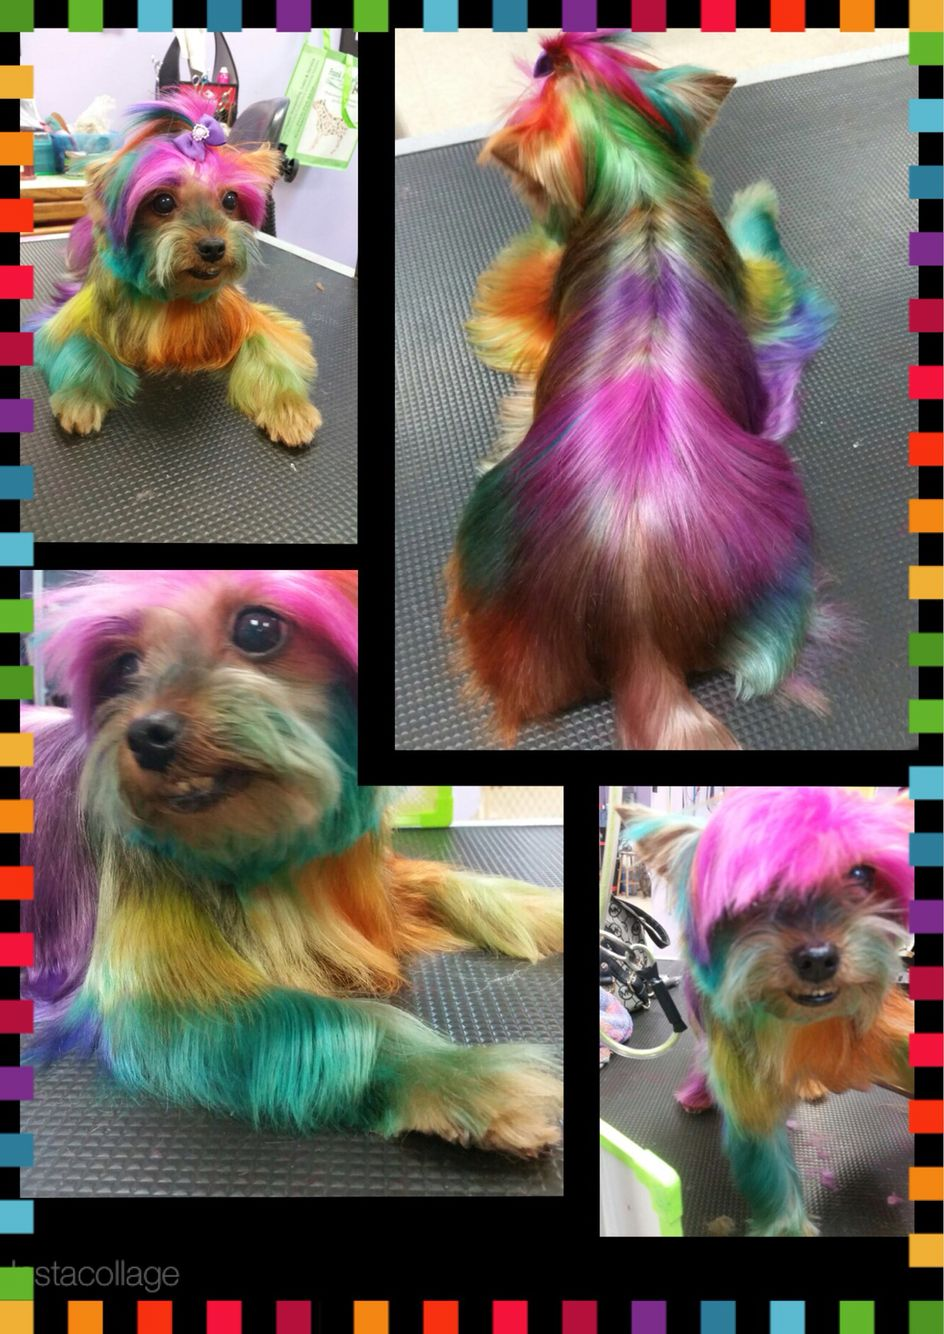 Yorkie with hair dye color | Dog grooming | Pinterest | Dog Grooming ...